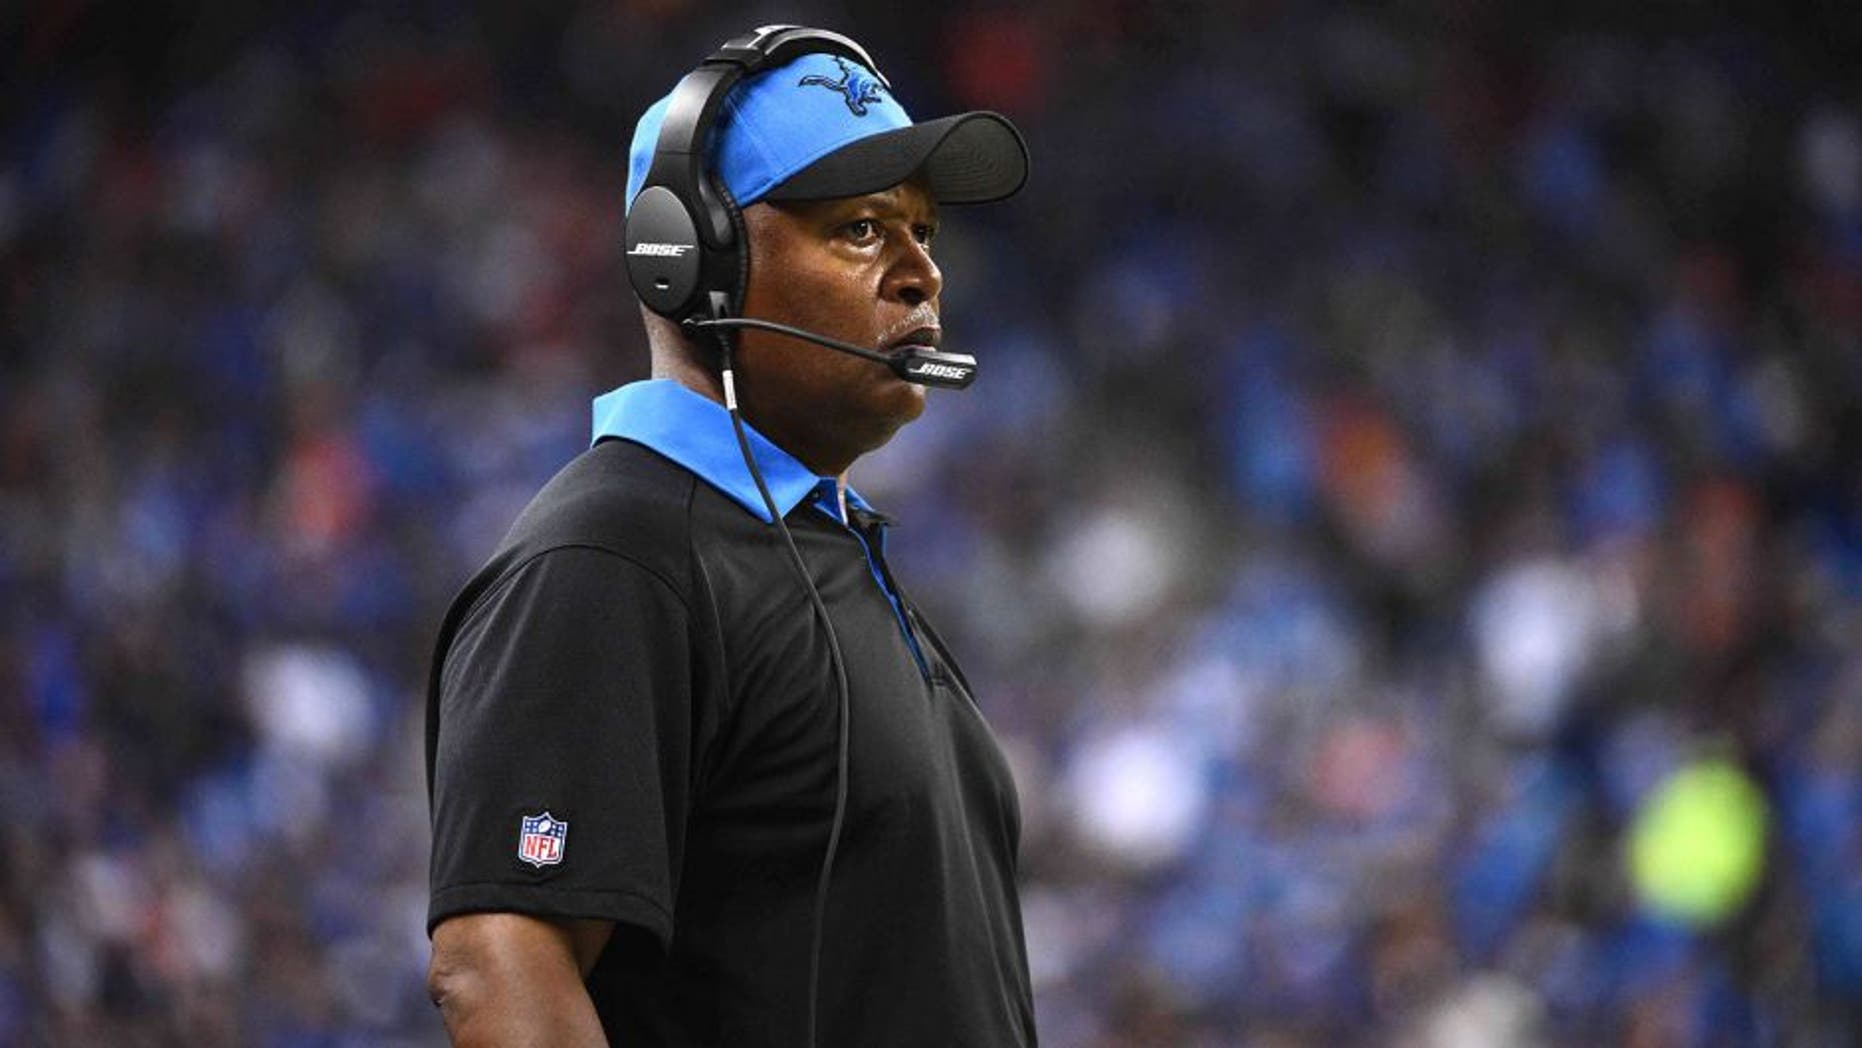 Sep 27, 2015; Detroit, MI, USA; Detroit Lions head coach Jim Caldwell looks on during the third quarter against the Denver Broncos at Ford Field. Mandatory Credit: Tim Fuller-USA TODAY Sports